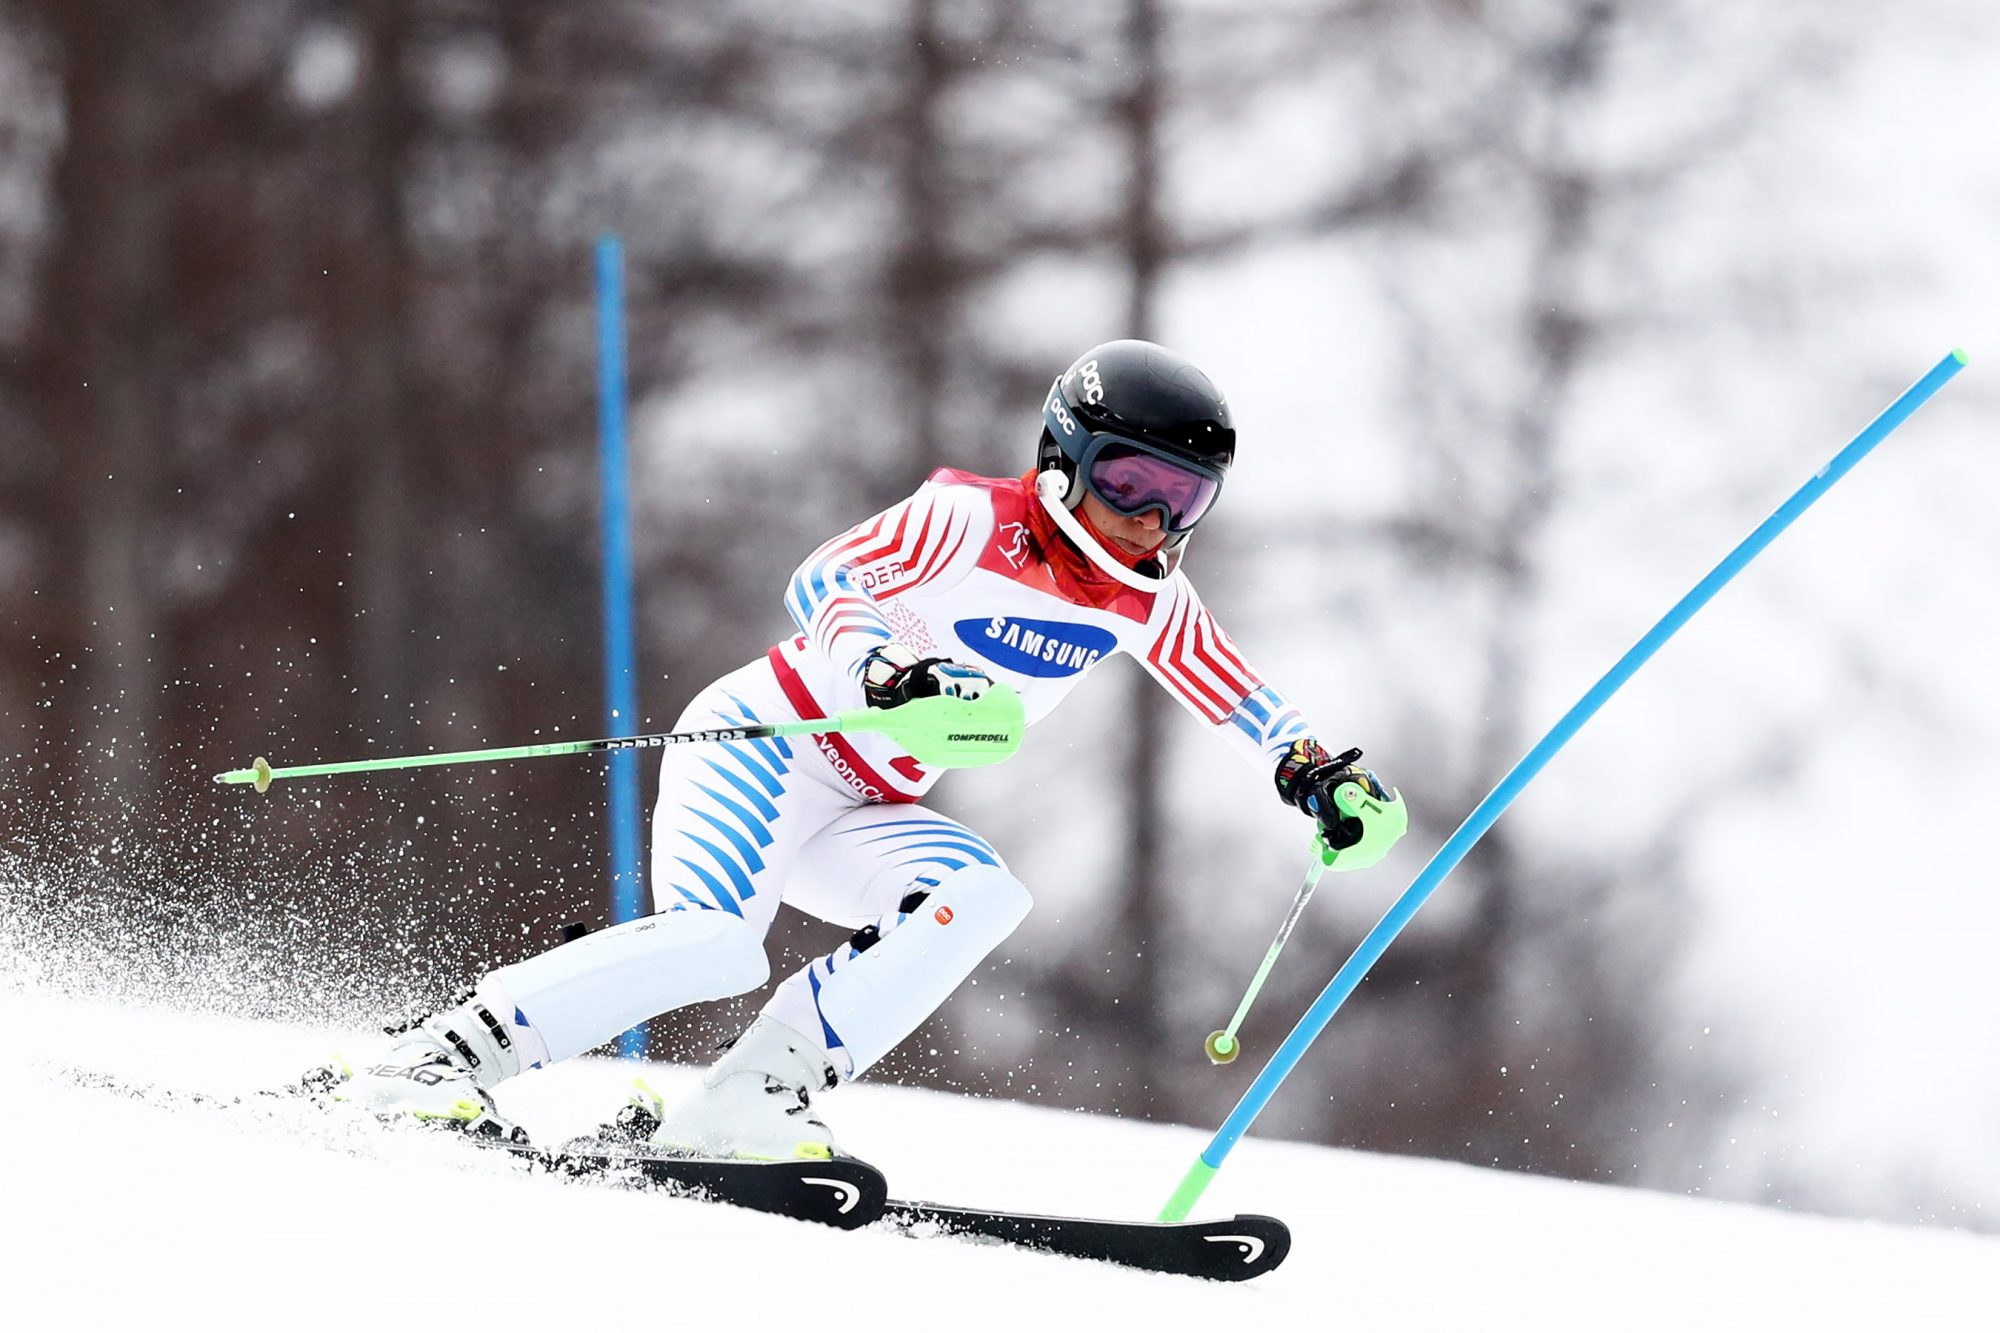 2018 Paralympic Winter Games - Day 9